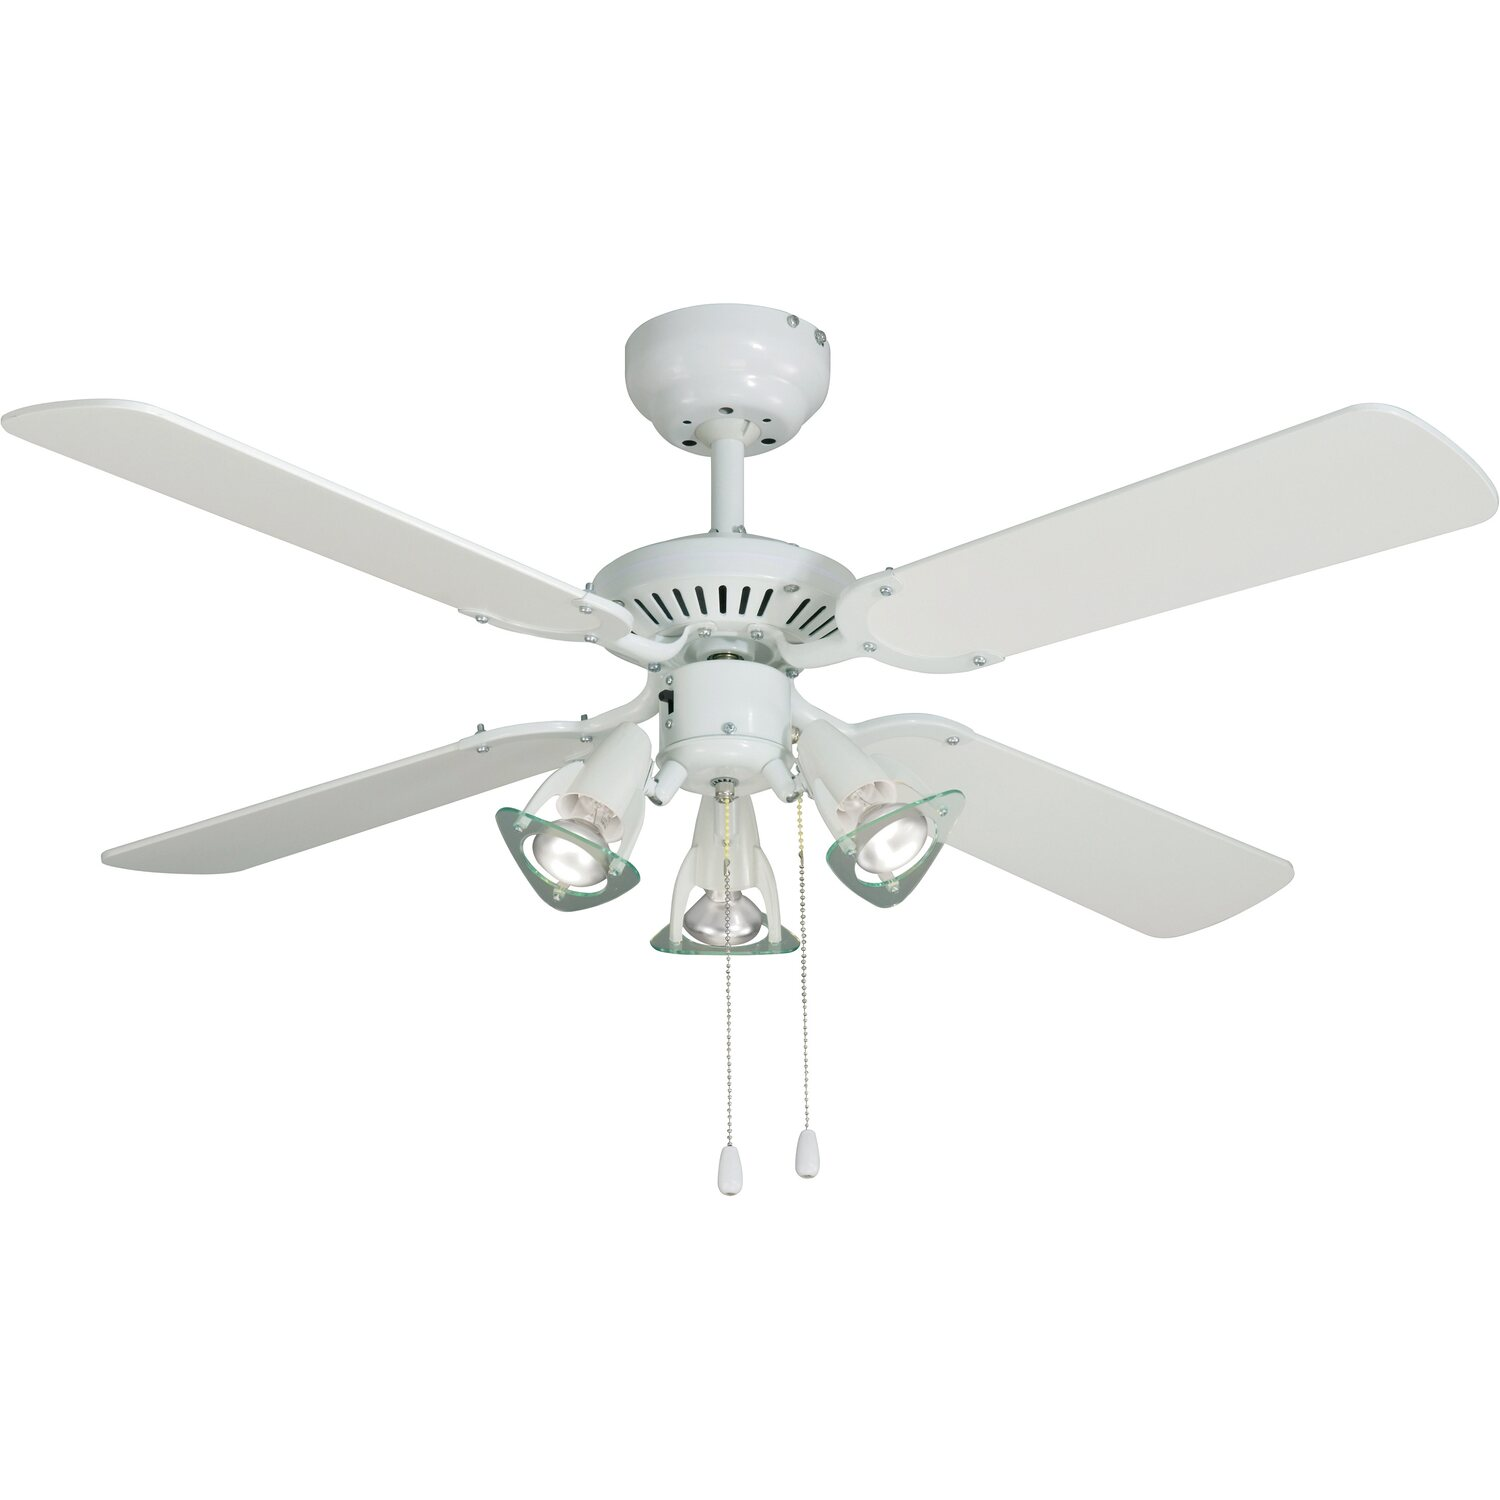 Ventilatore a soffitto cmi princess 107 cm bianco for Obi ventilatori